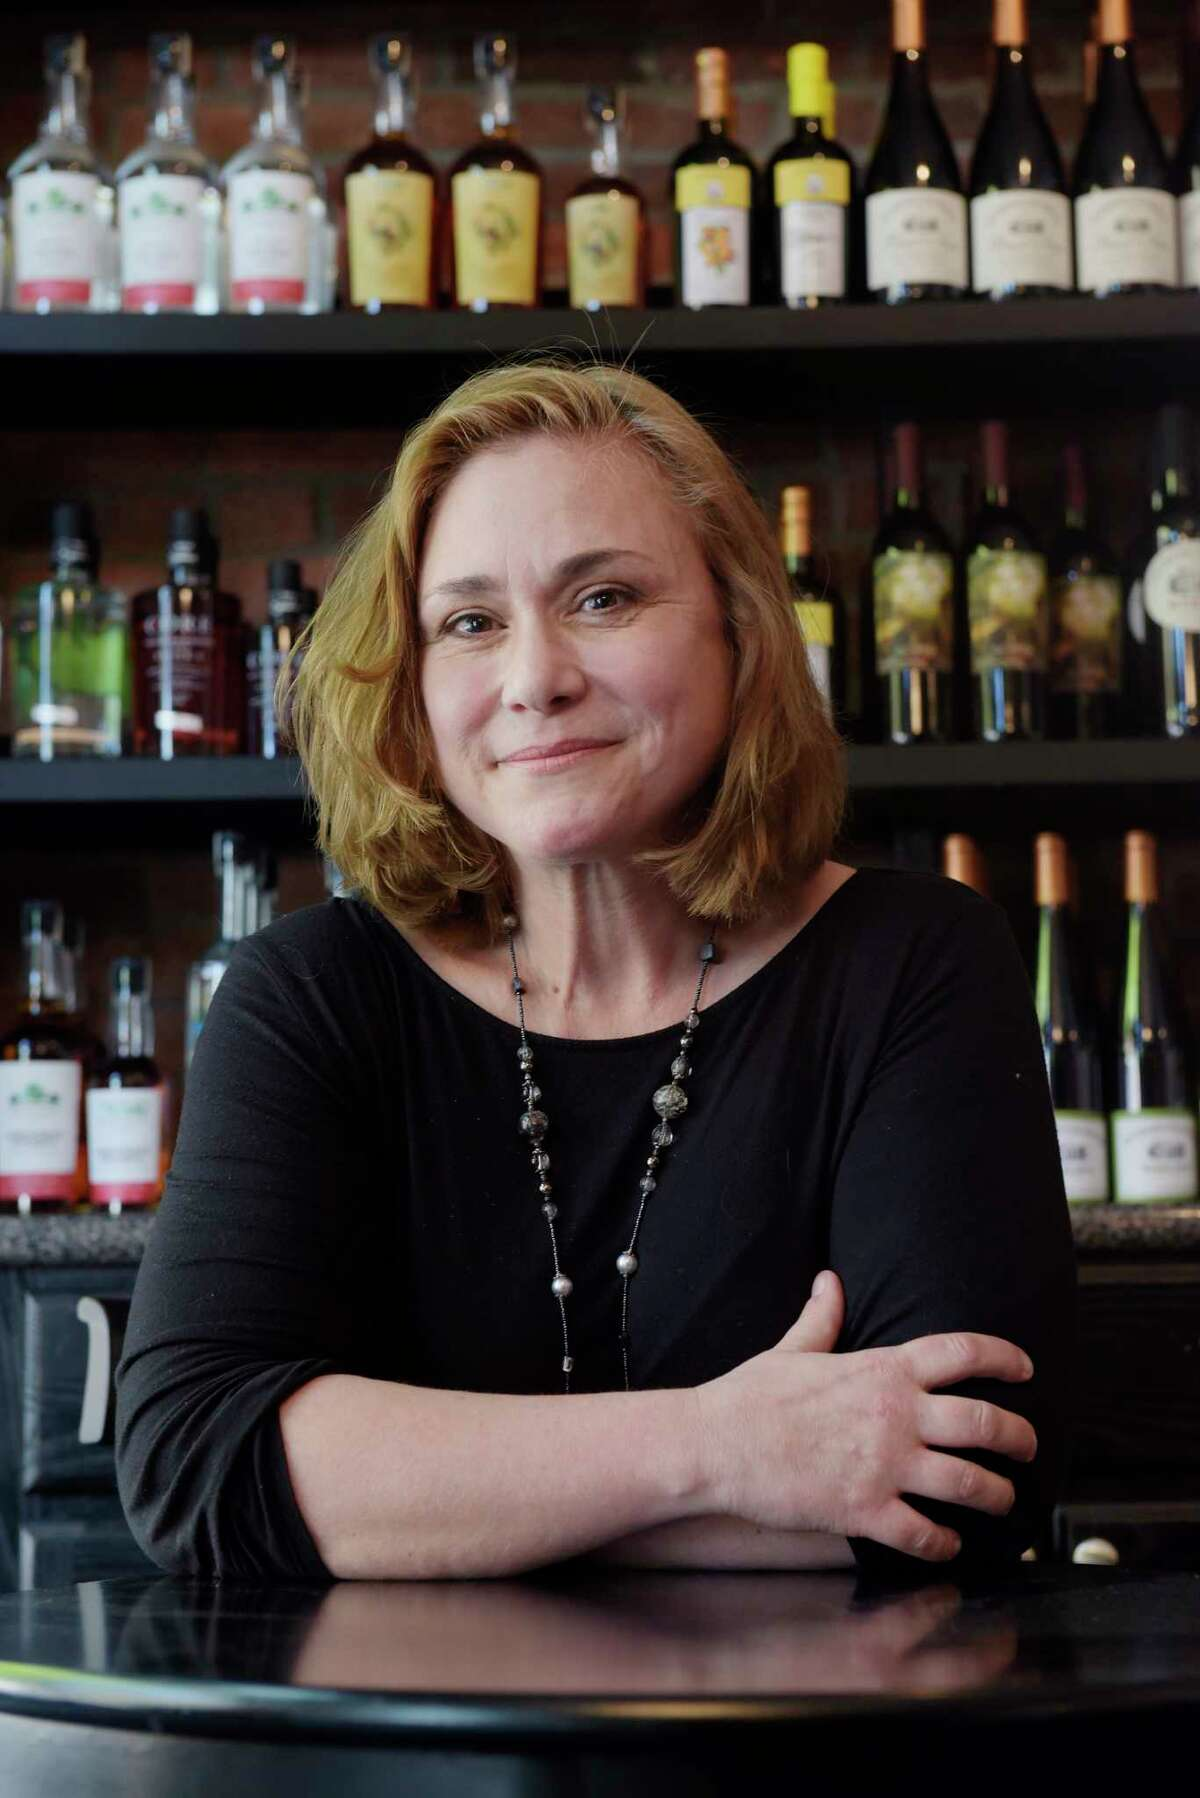 Kathleen Weber, owner of Northern Cross Vineyard, poses for a photo at the Hudson-Chatham Winery tasting room on Thursday, May 24, 2018, in Troy, N.Y. (Paul Buckowski/Times Union)